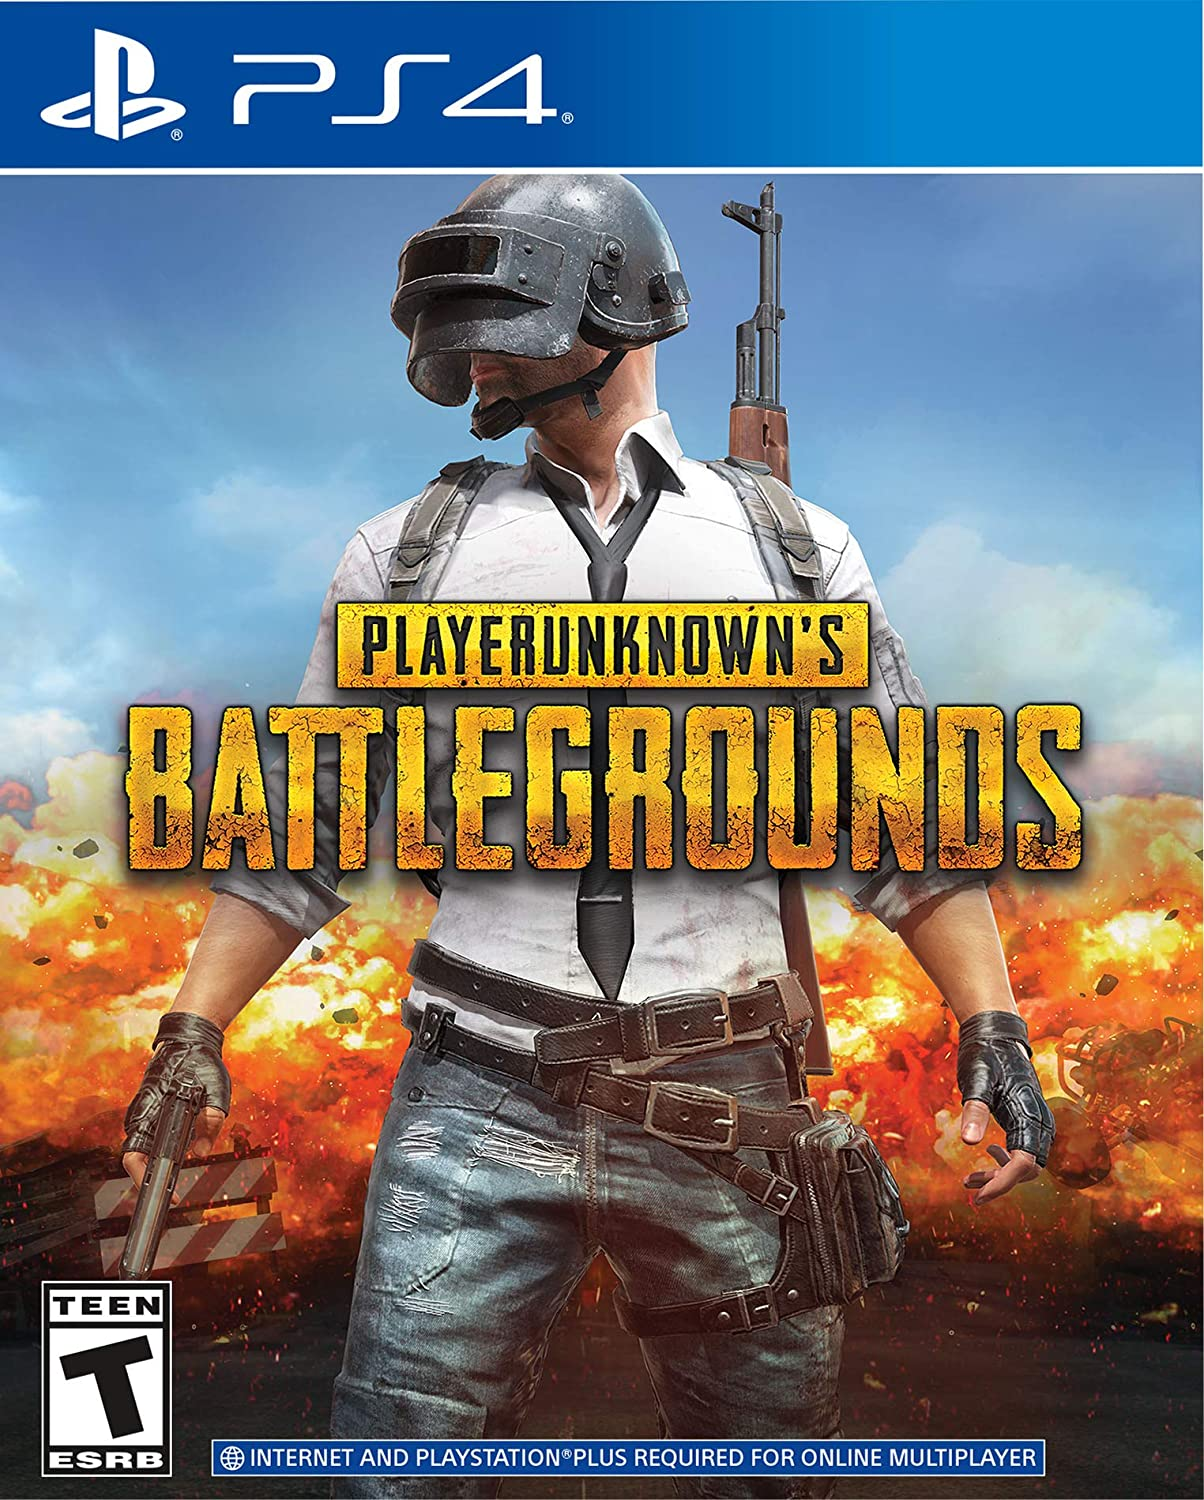 battlegrounds pc download key